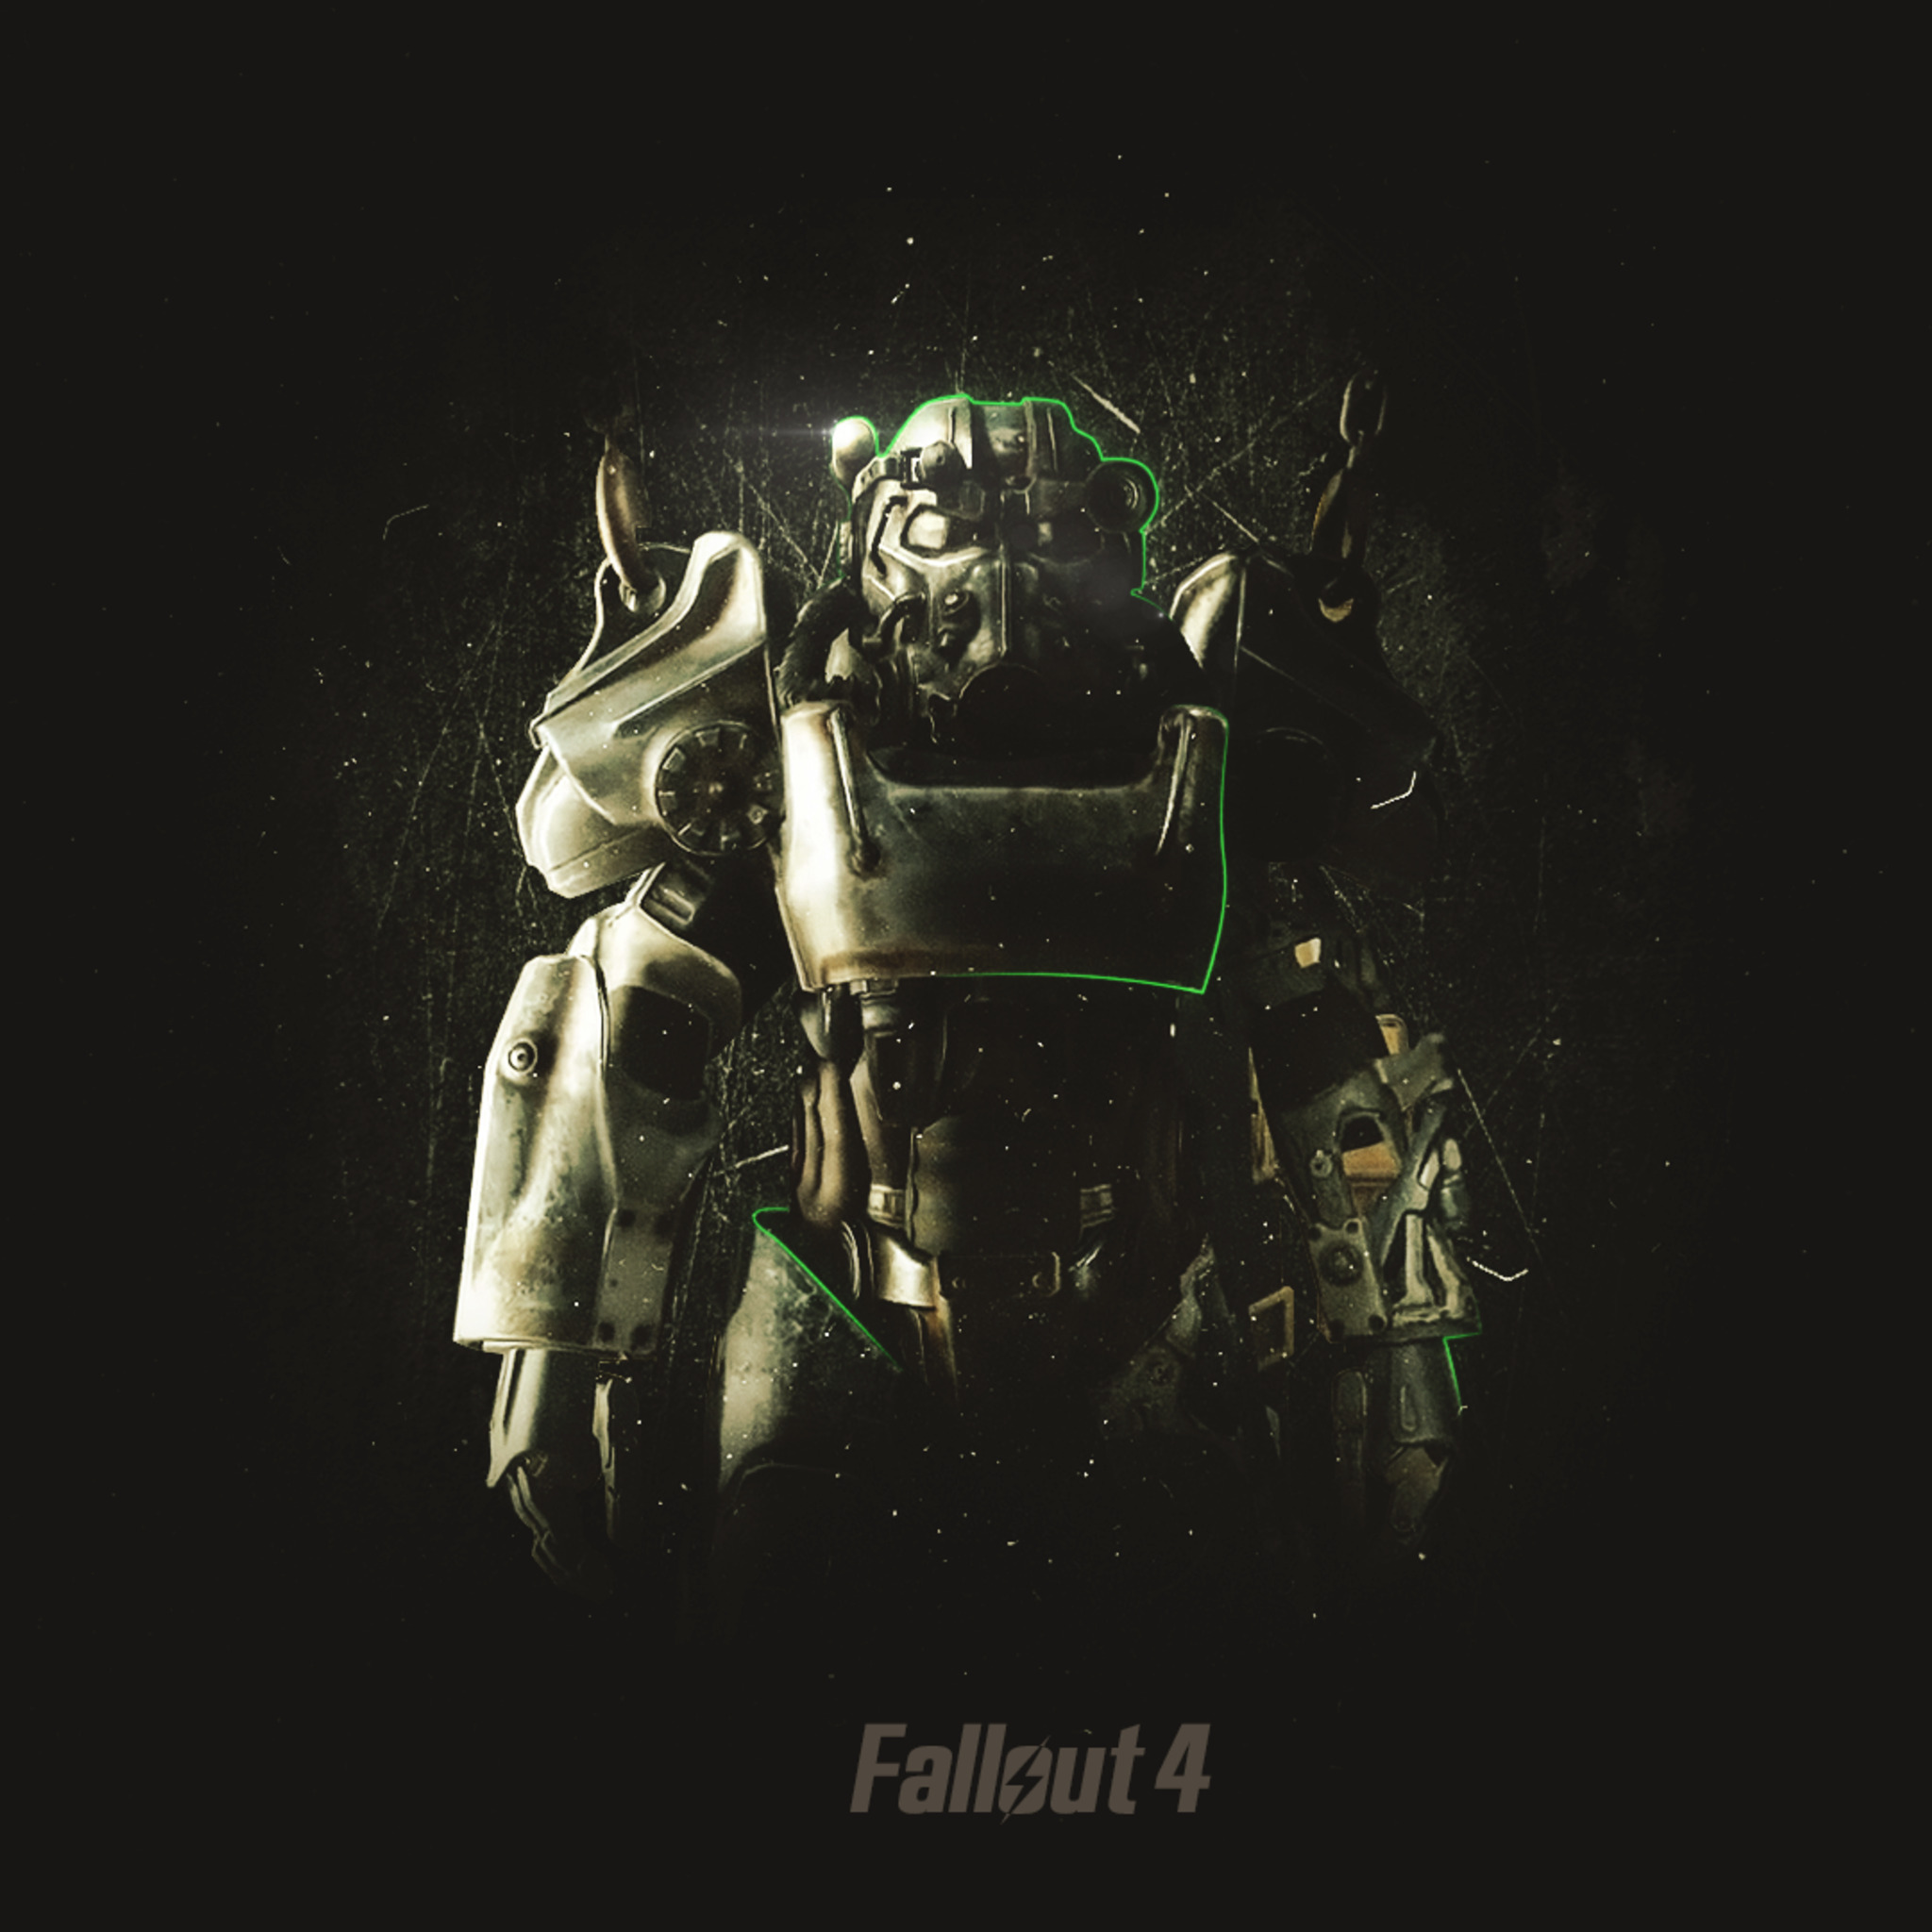 Fallout 4 Wallpaper Hd: 2048x2048 Fallout 4 HD Ipad Air HD 4k Wallpapers, Images